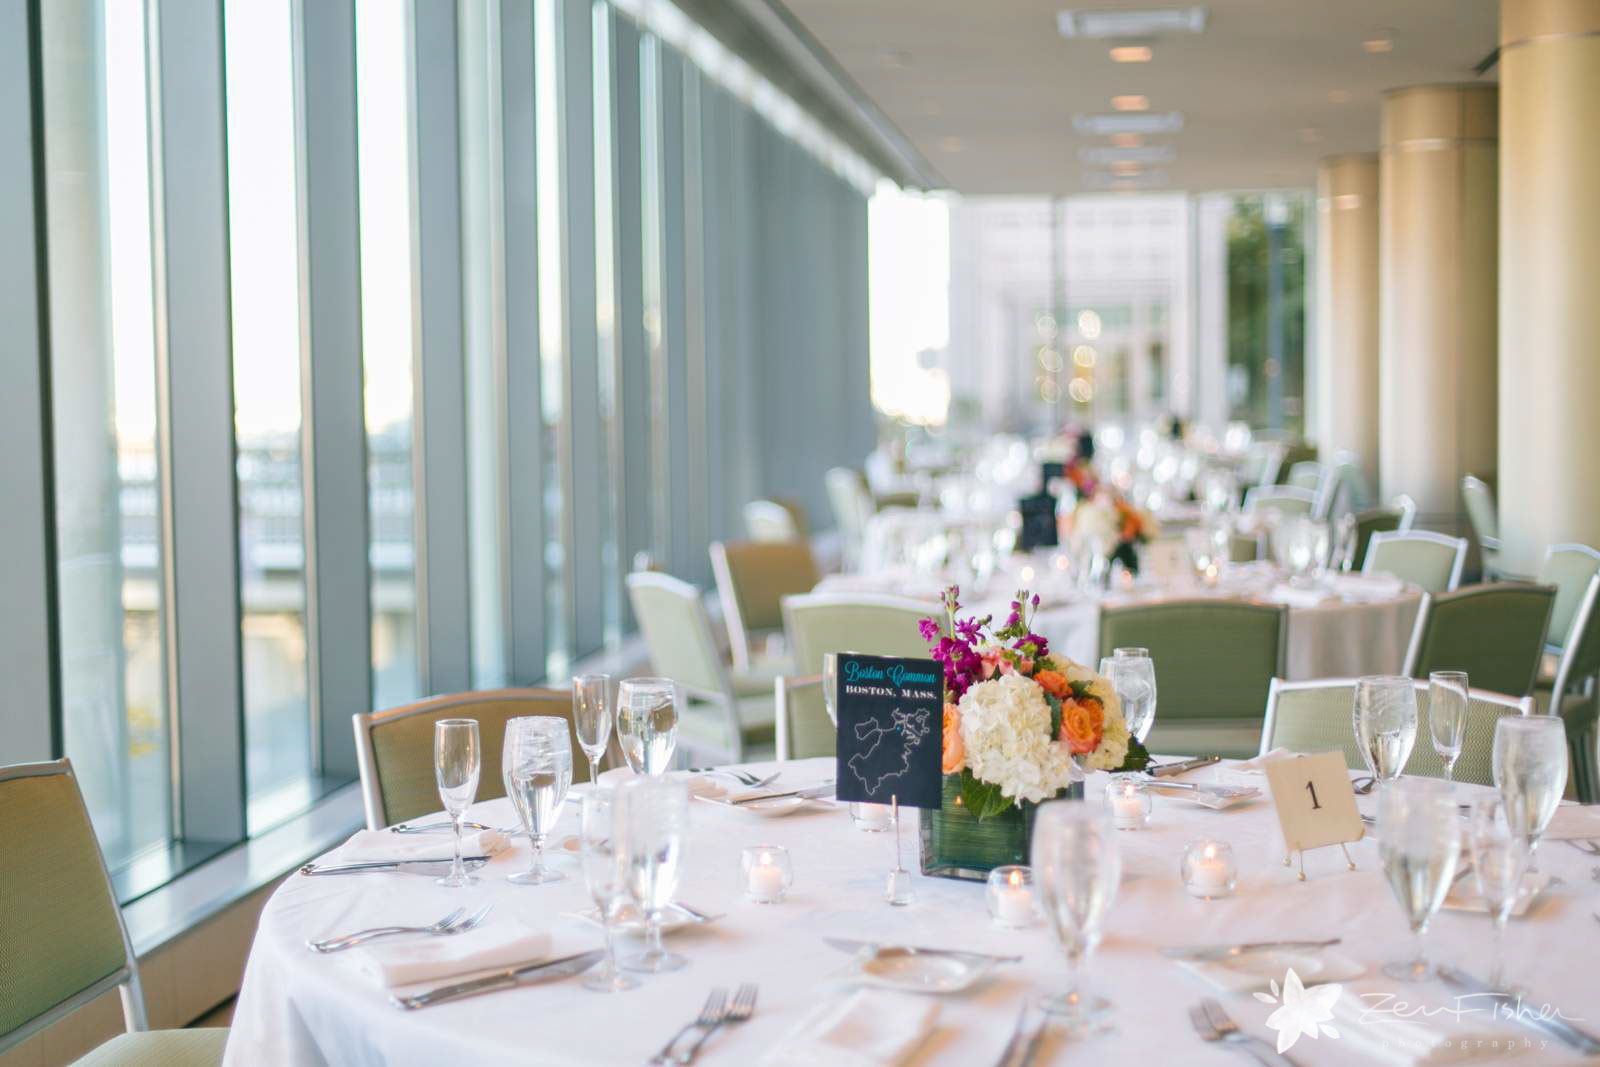 Reception hall with table settings at Boston Seaport Hotel with tall windows and airy natural light.